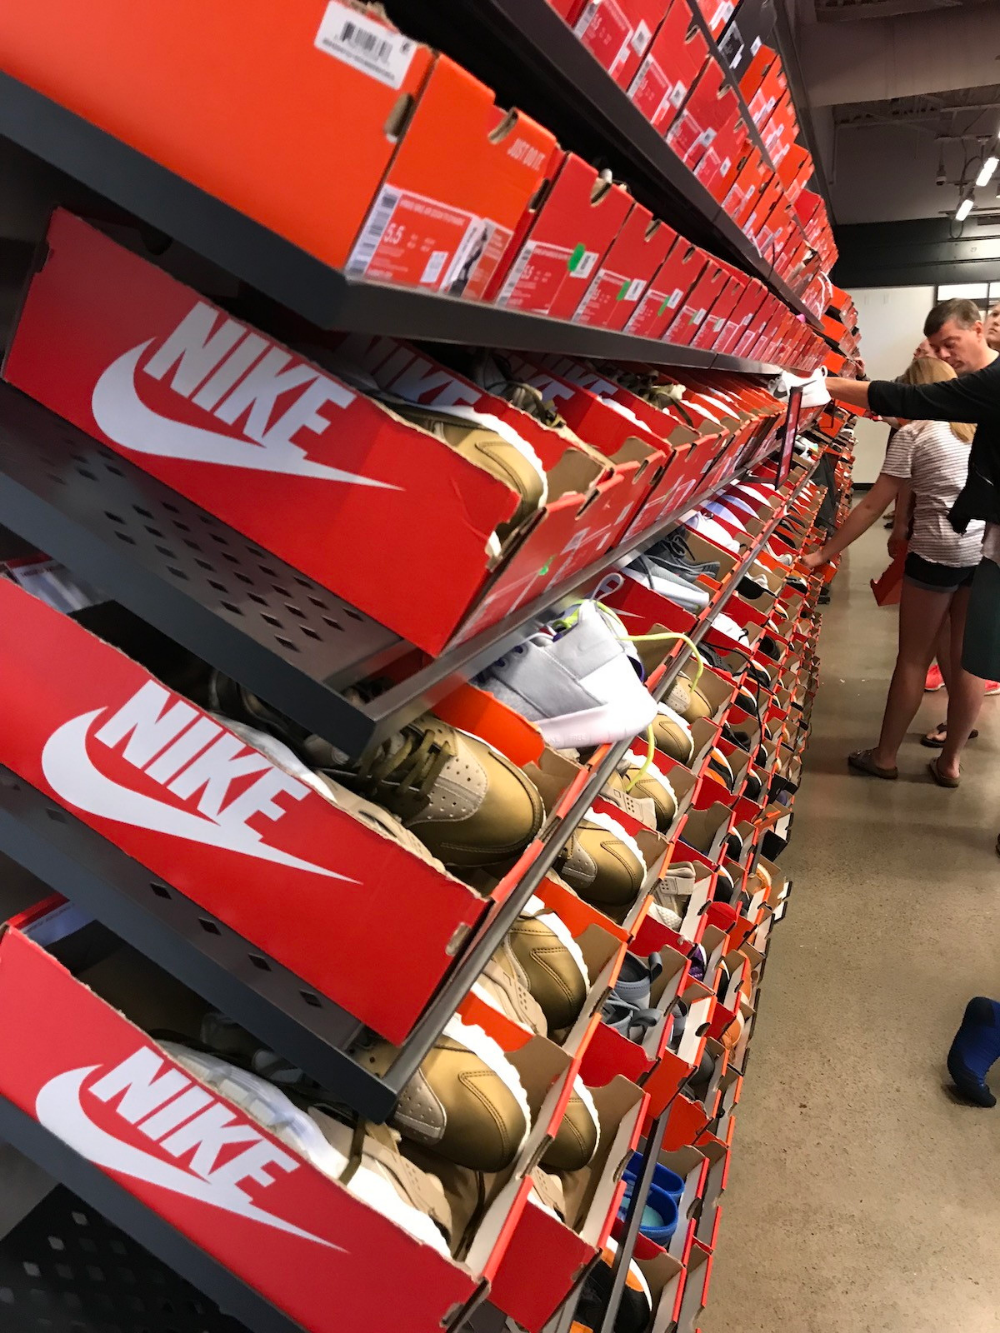 33 Insanely Smart Nike Factory Store Hacks In 2020 Nike Factory Factory Store Nike Shoes Girls